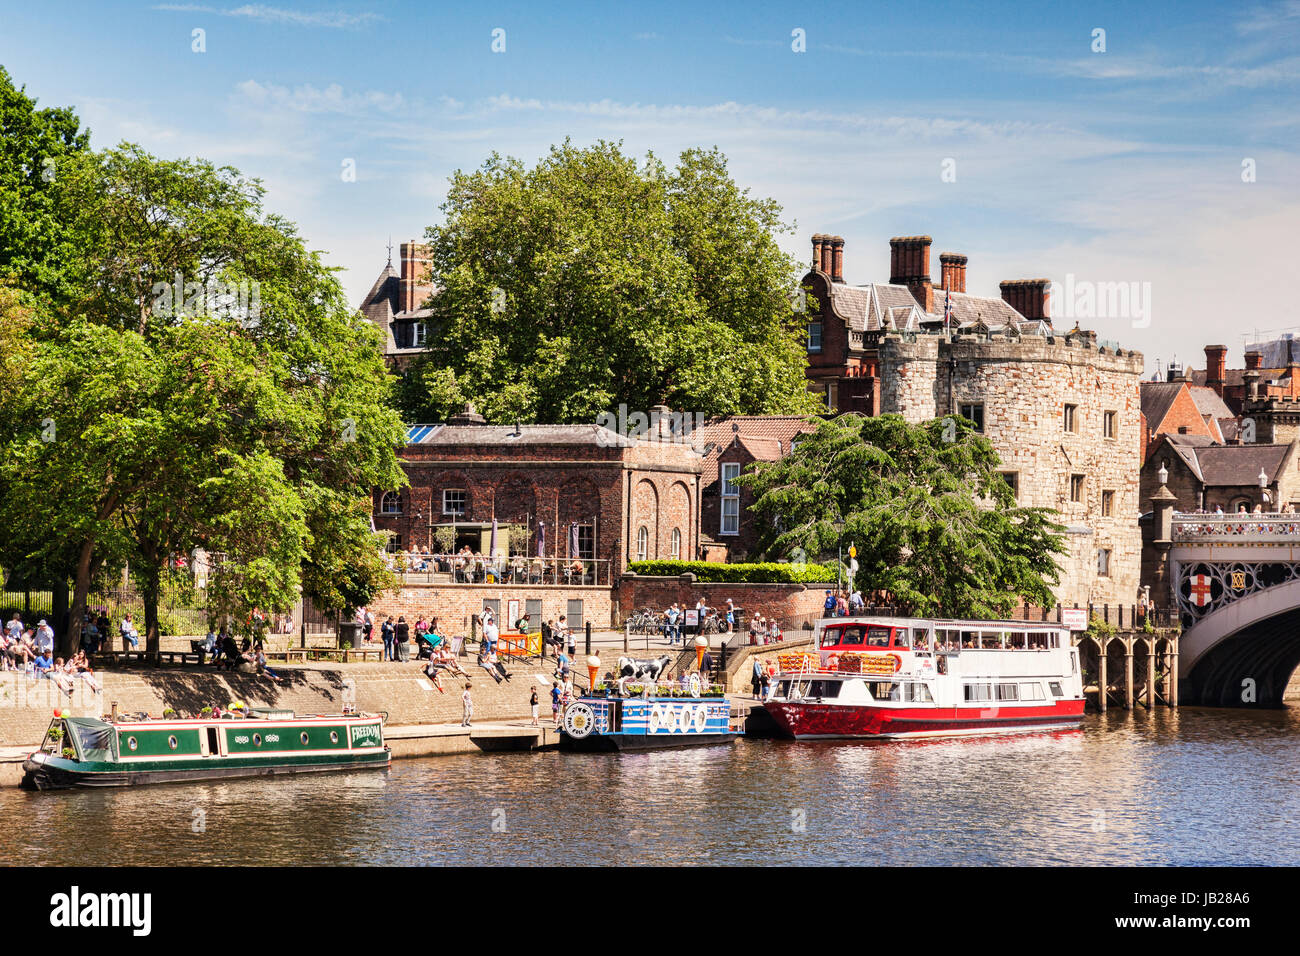 31 May 2017: York, North Yorkshire, England, UK - Pleasure boats at Lendal Bridge Landing, with crowds of tourists - Stock Image